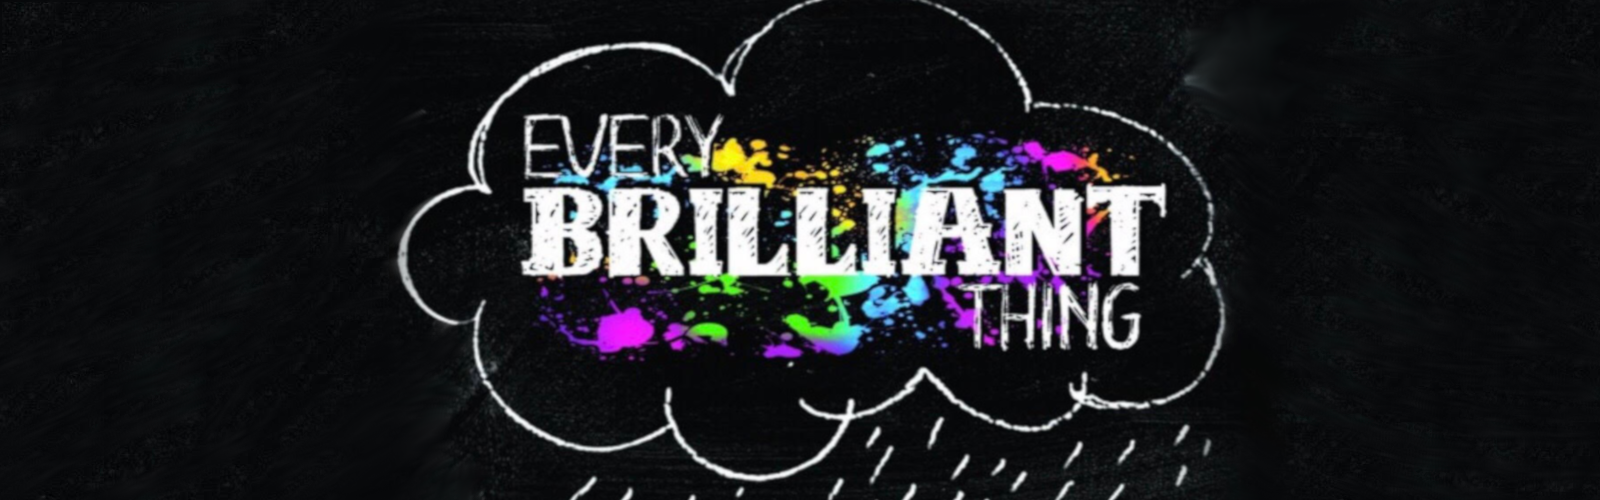 EveryBrilliantThing